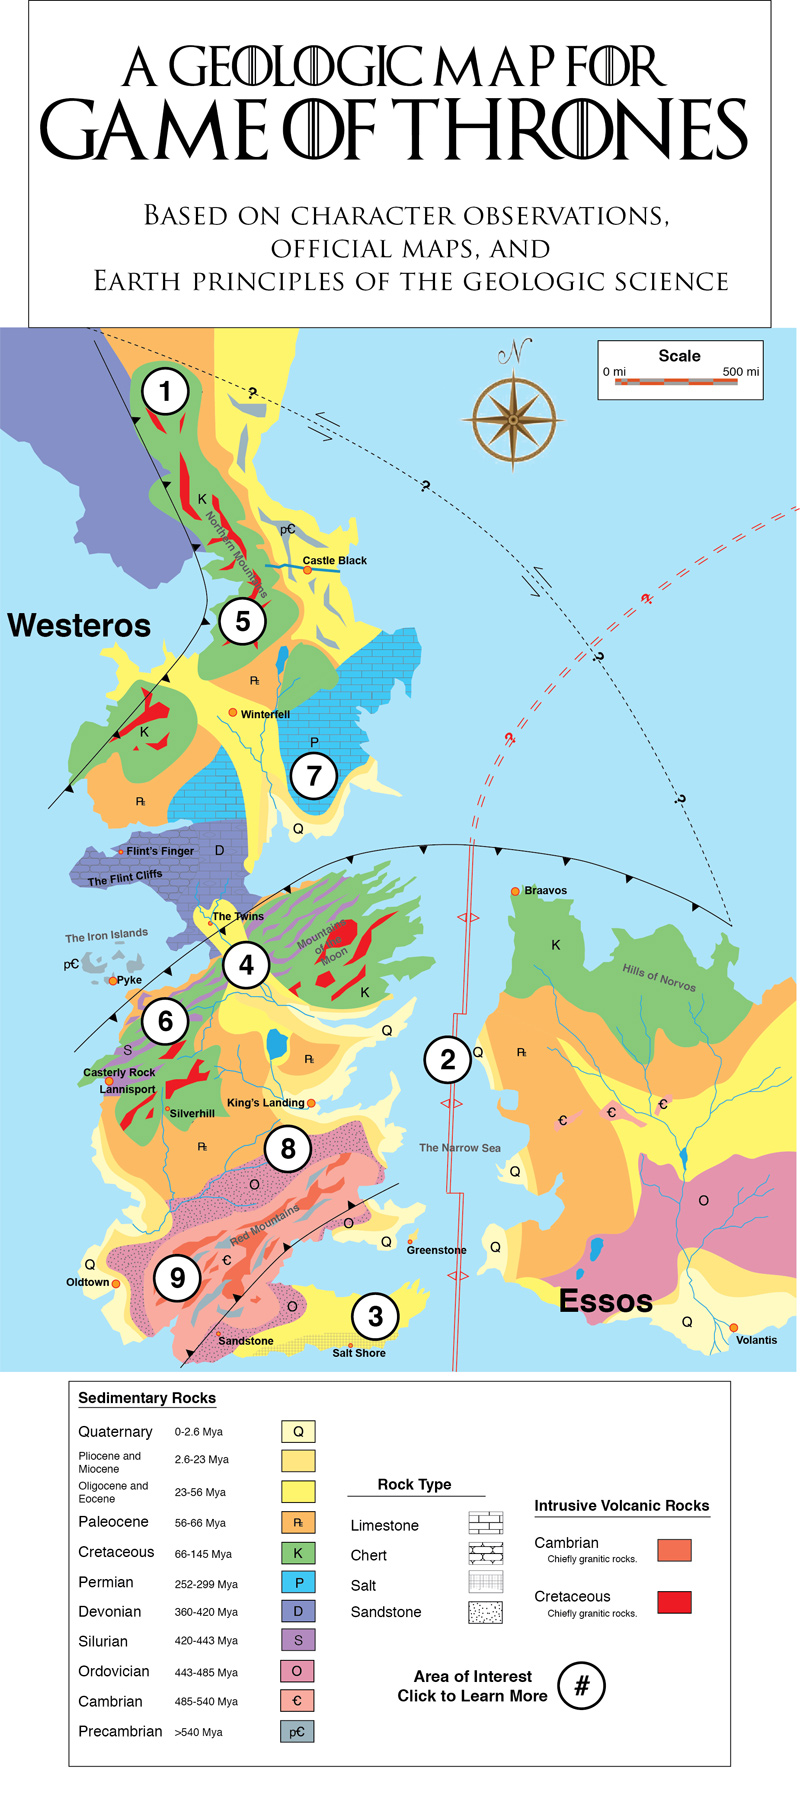 A Geologic Map for Game of Thrones